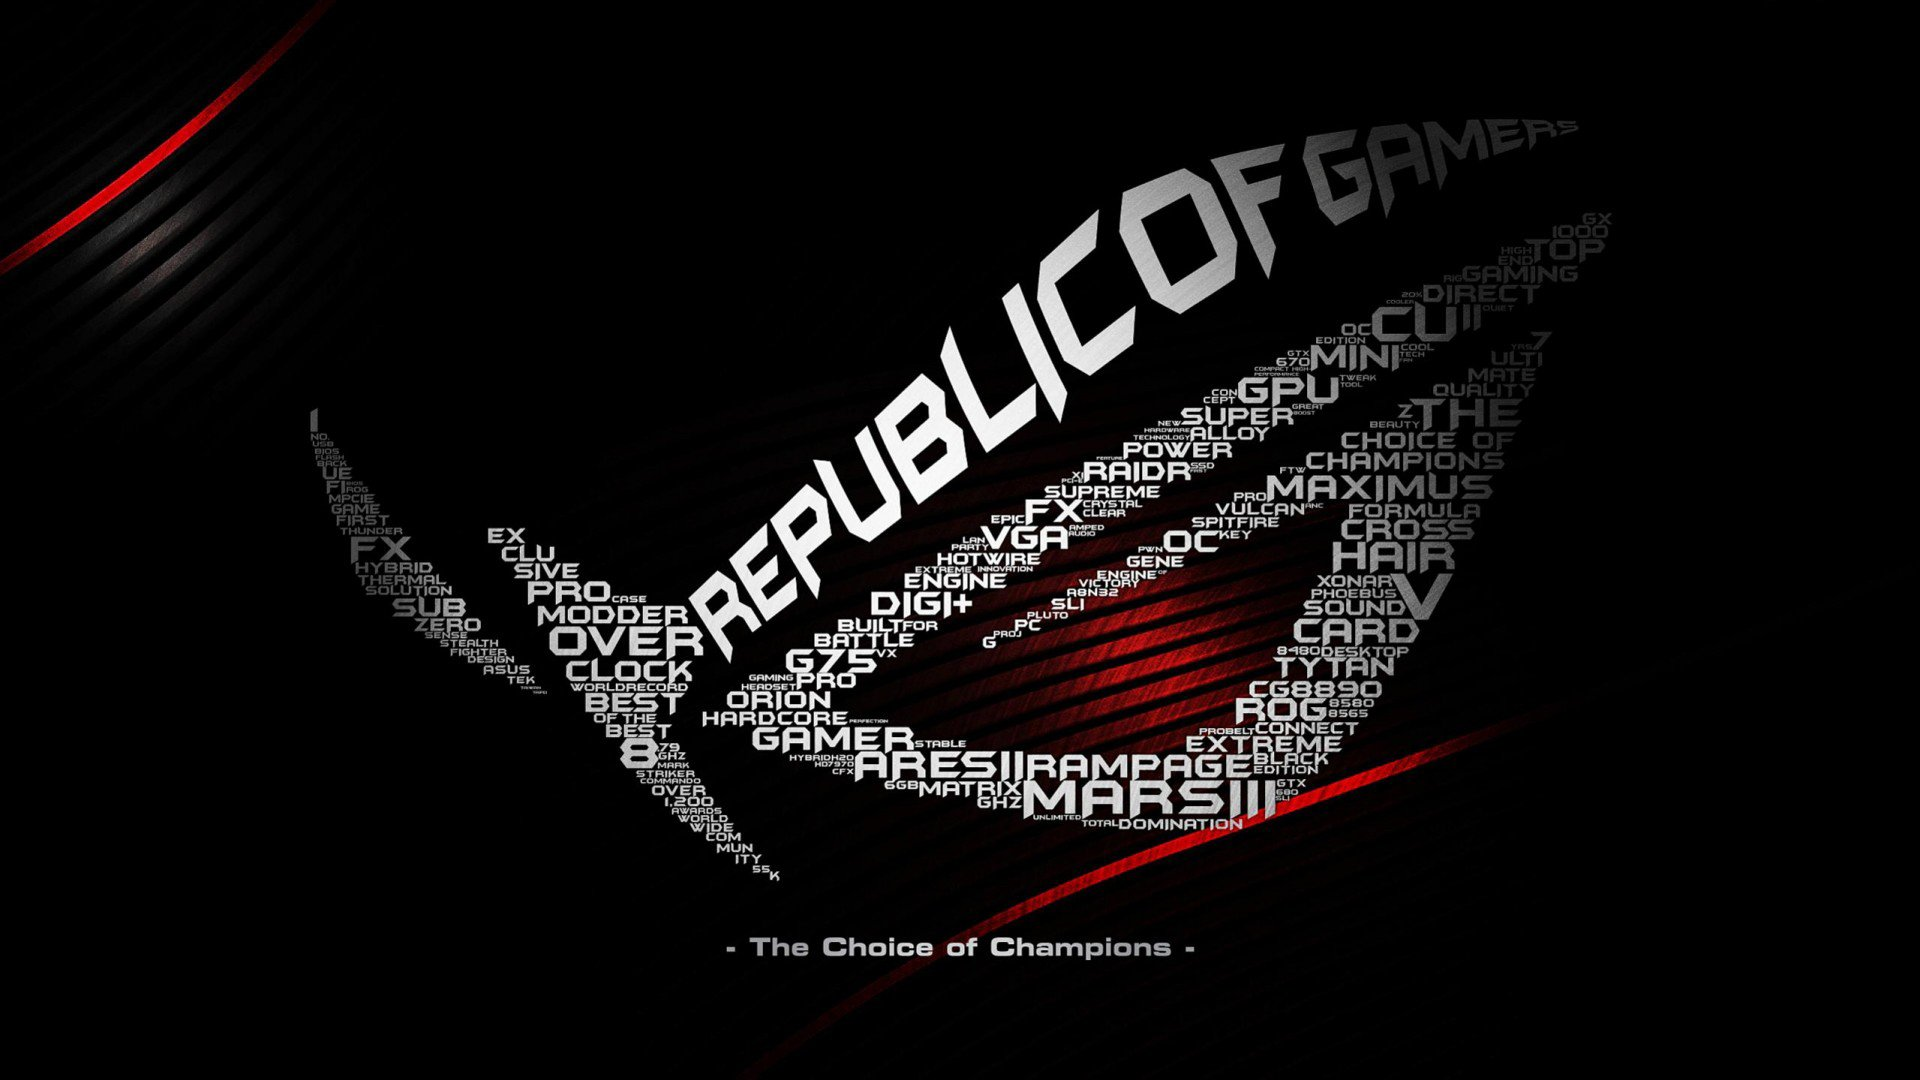 ASUS computer rog gamer republic gaming wallpaper background 1920x1080